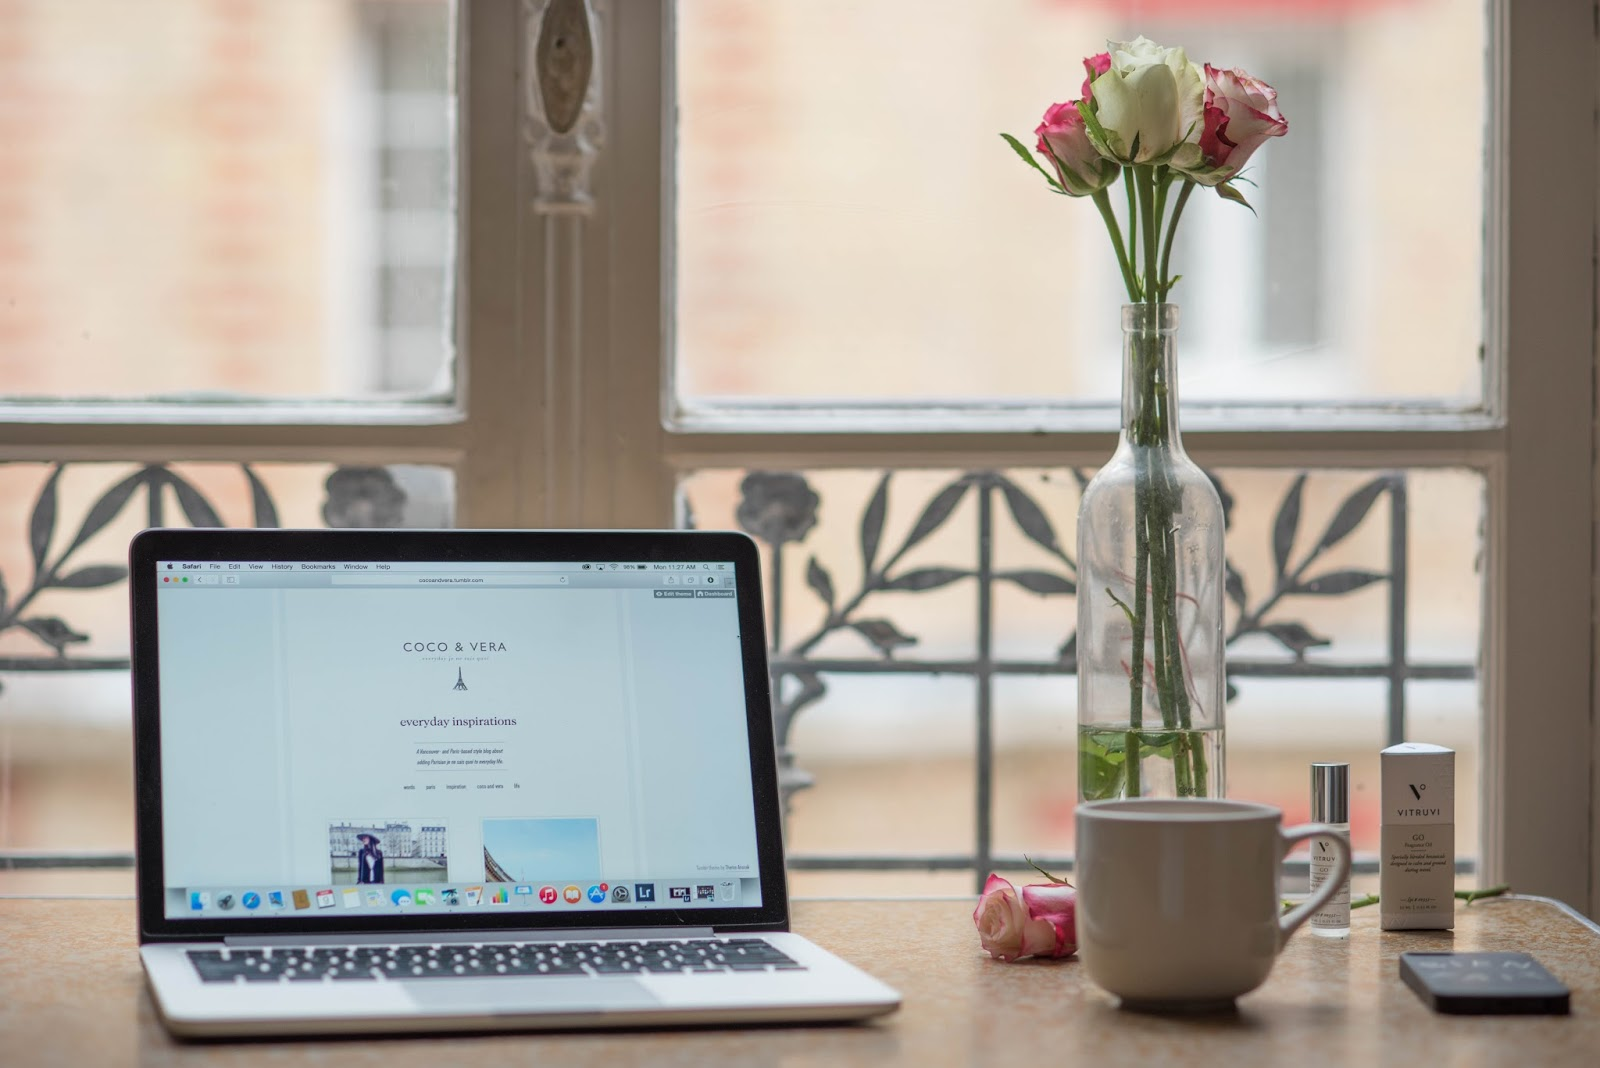 coco and vera, top paris travel blog, vitruvi go aromatherapy oil, macbook air, roses, madewell bien fait iphone case, work space